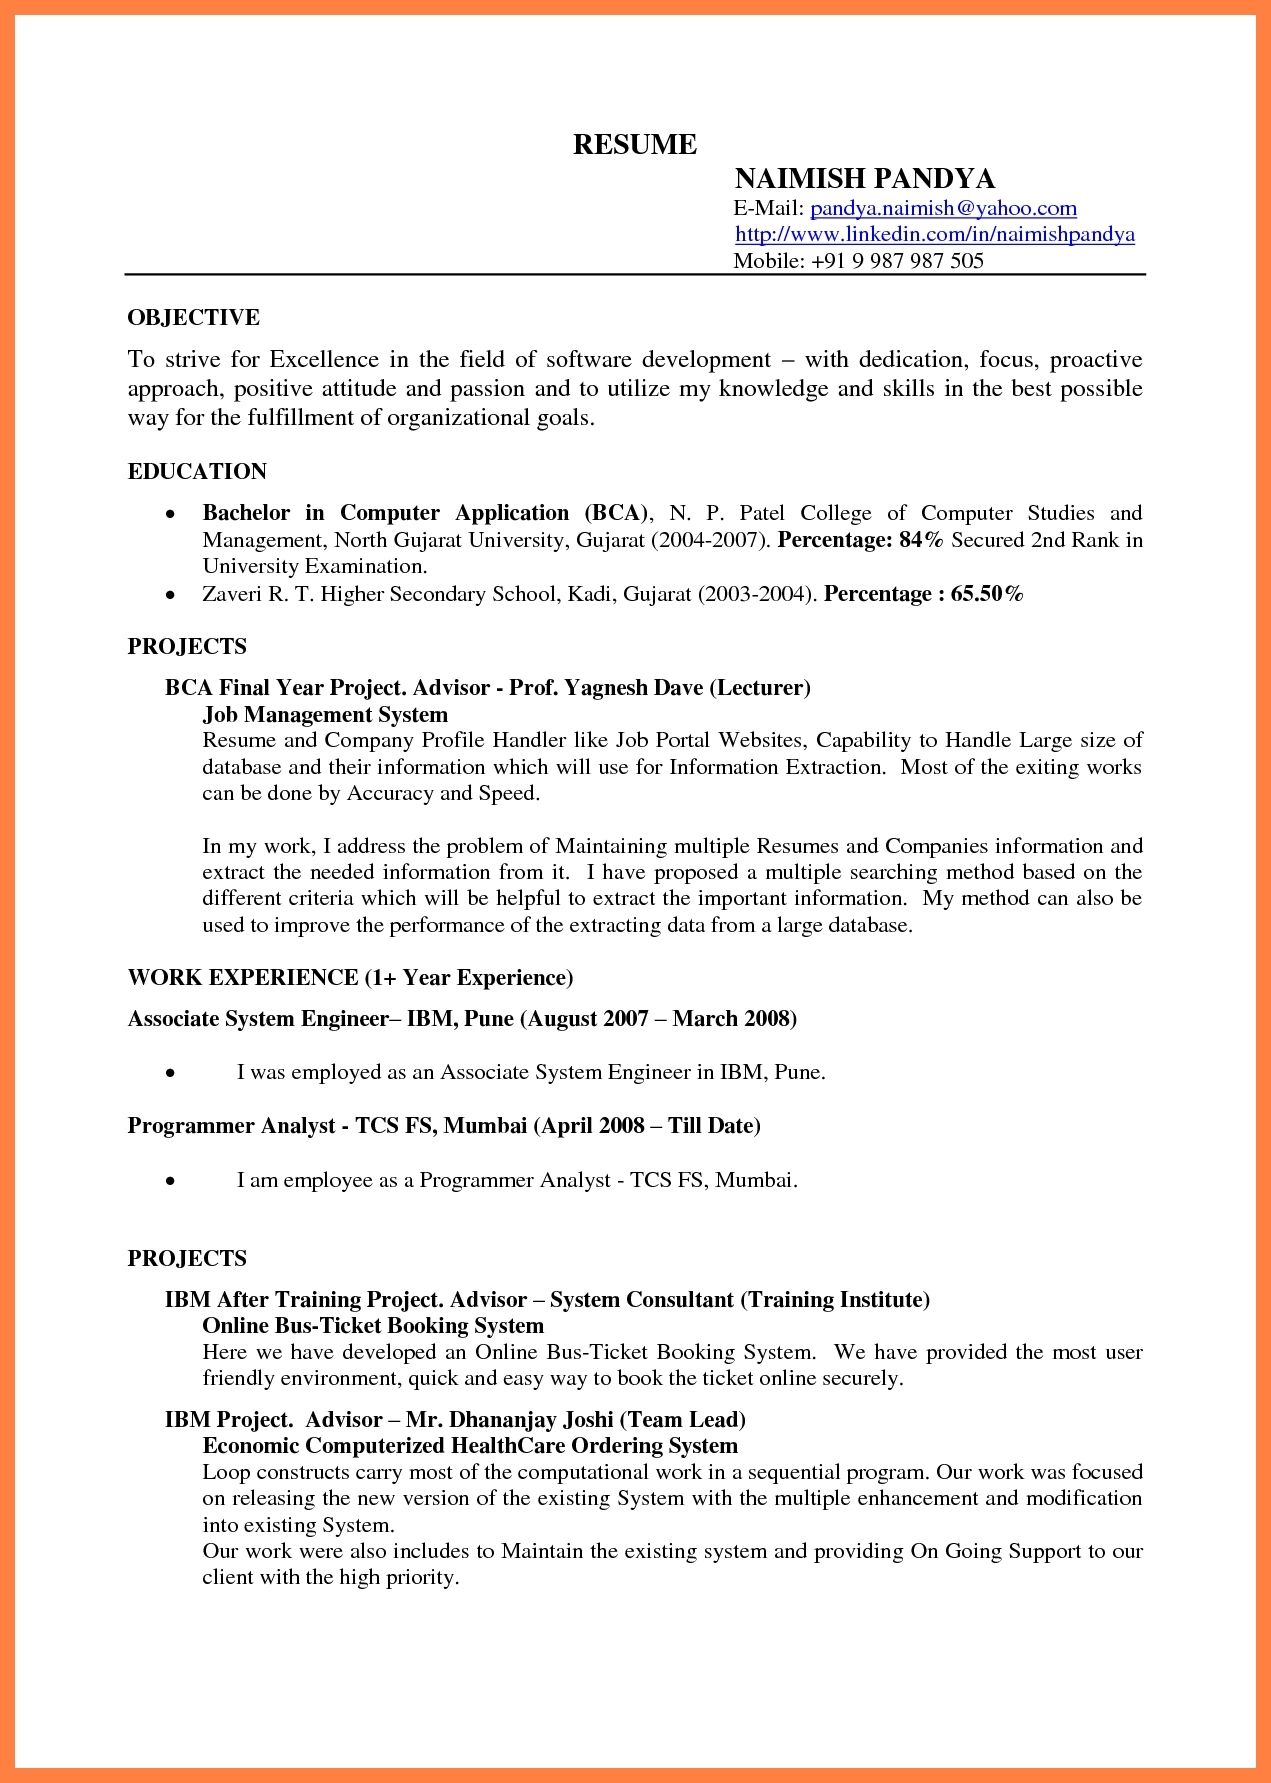 13 Free Resume Templates Freeresumetemplates